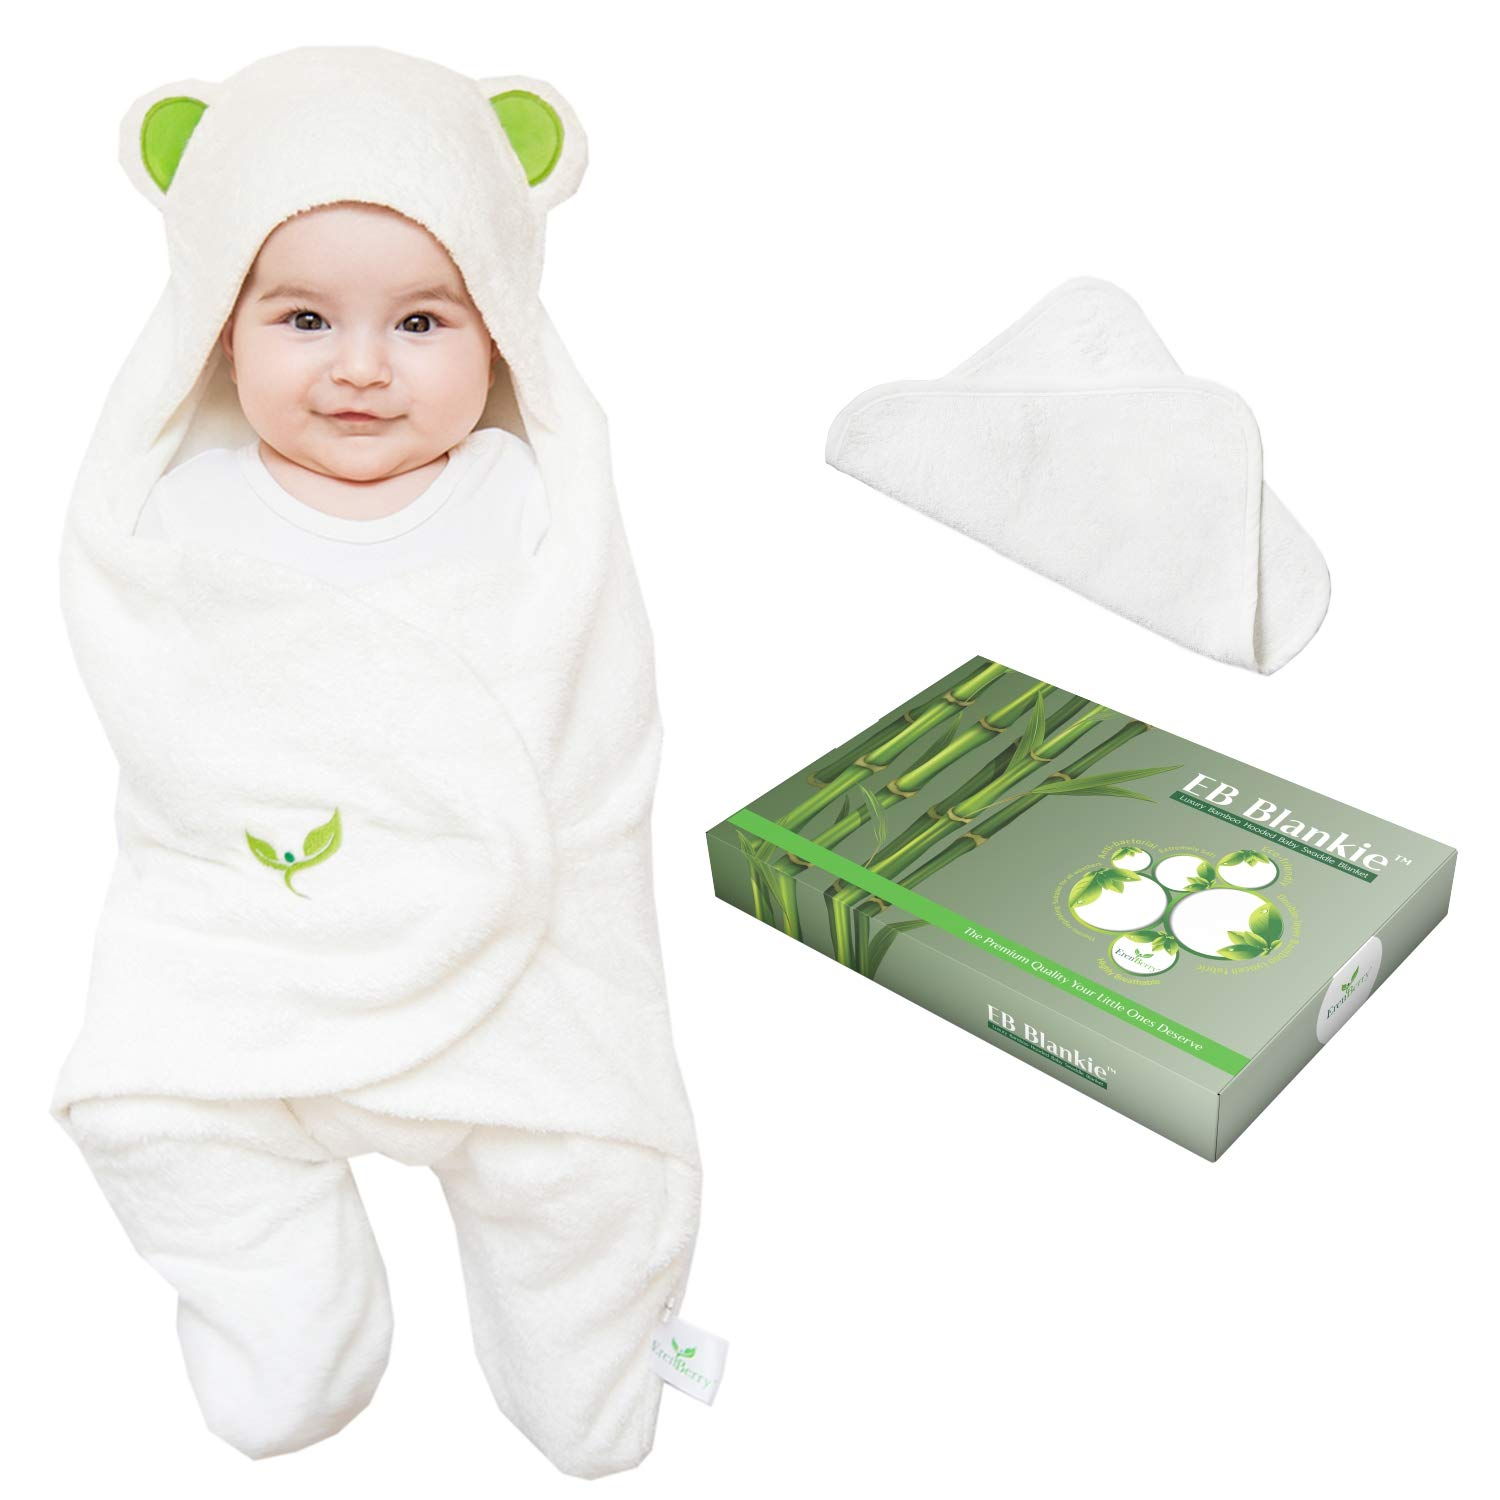 Bamboo Lyocell Swaddle Blanket - Premium Quality Baby Swaddle Wrap - Unisex Baby Sleeping Bag - Perfect Baby Shower Gift - Bonus Bamboo Washcloth, Green Ears - Medium Size by ErenBerry